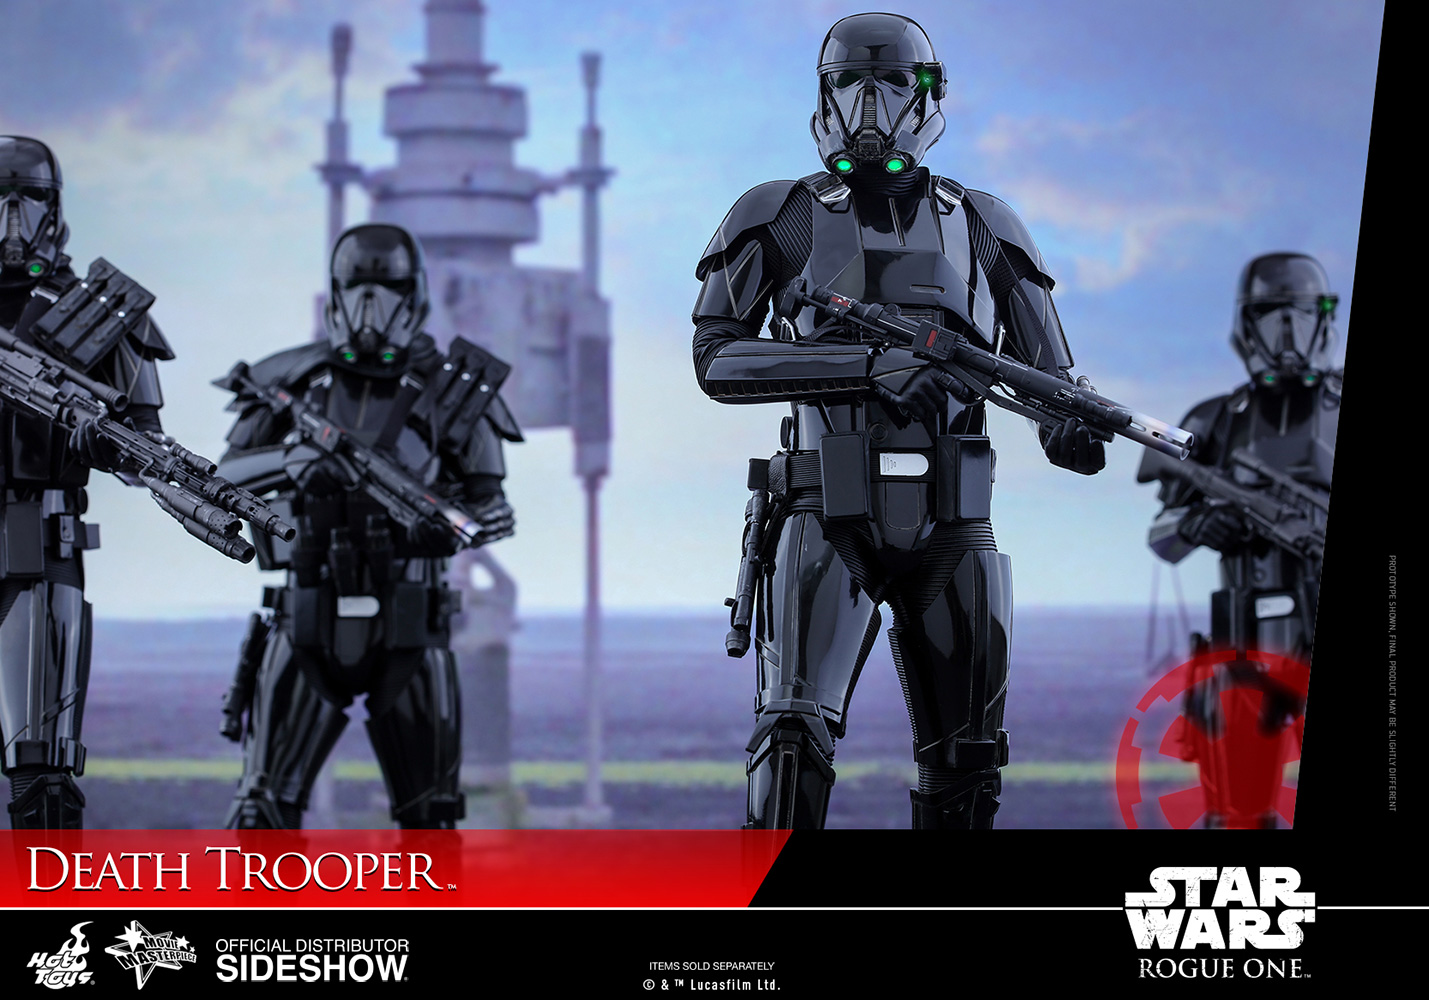 star-wars-rogue-one-death-trooper-sixth-scale-hot-toys-902905-03